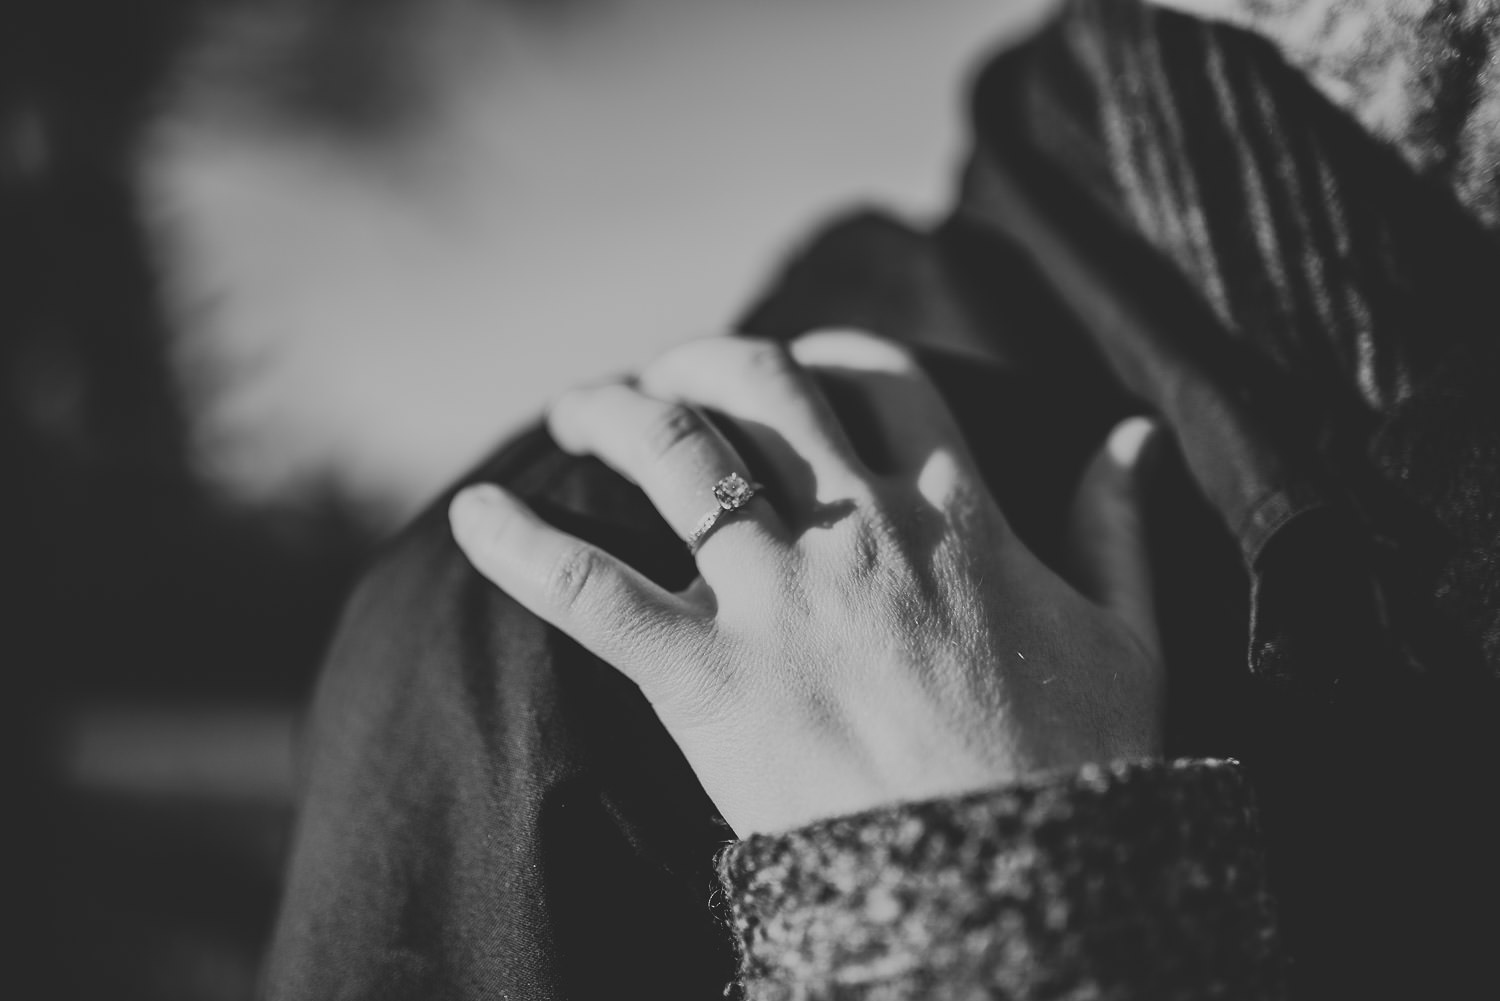 woman's hand with engagement ring resting on man's shoulder